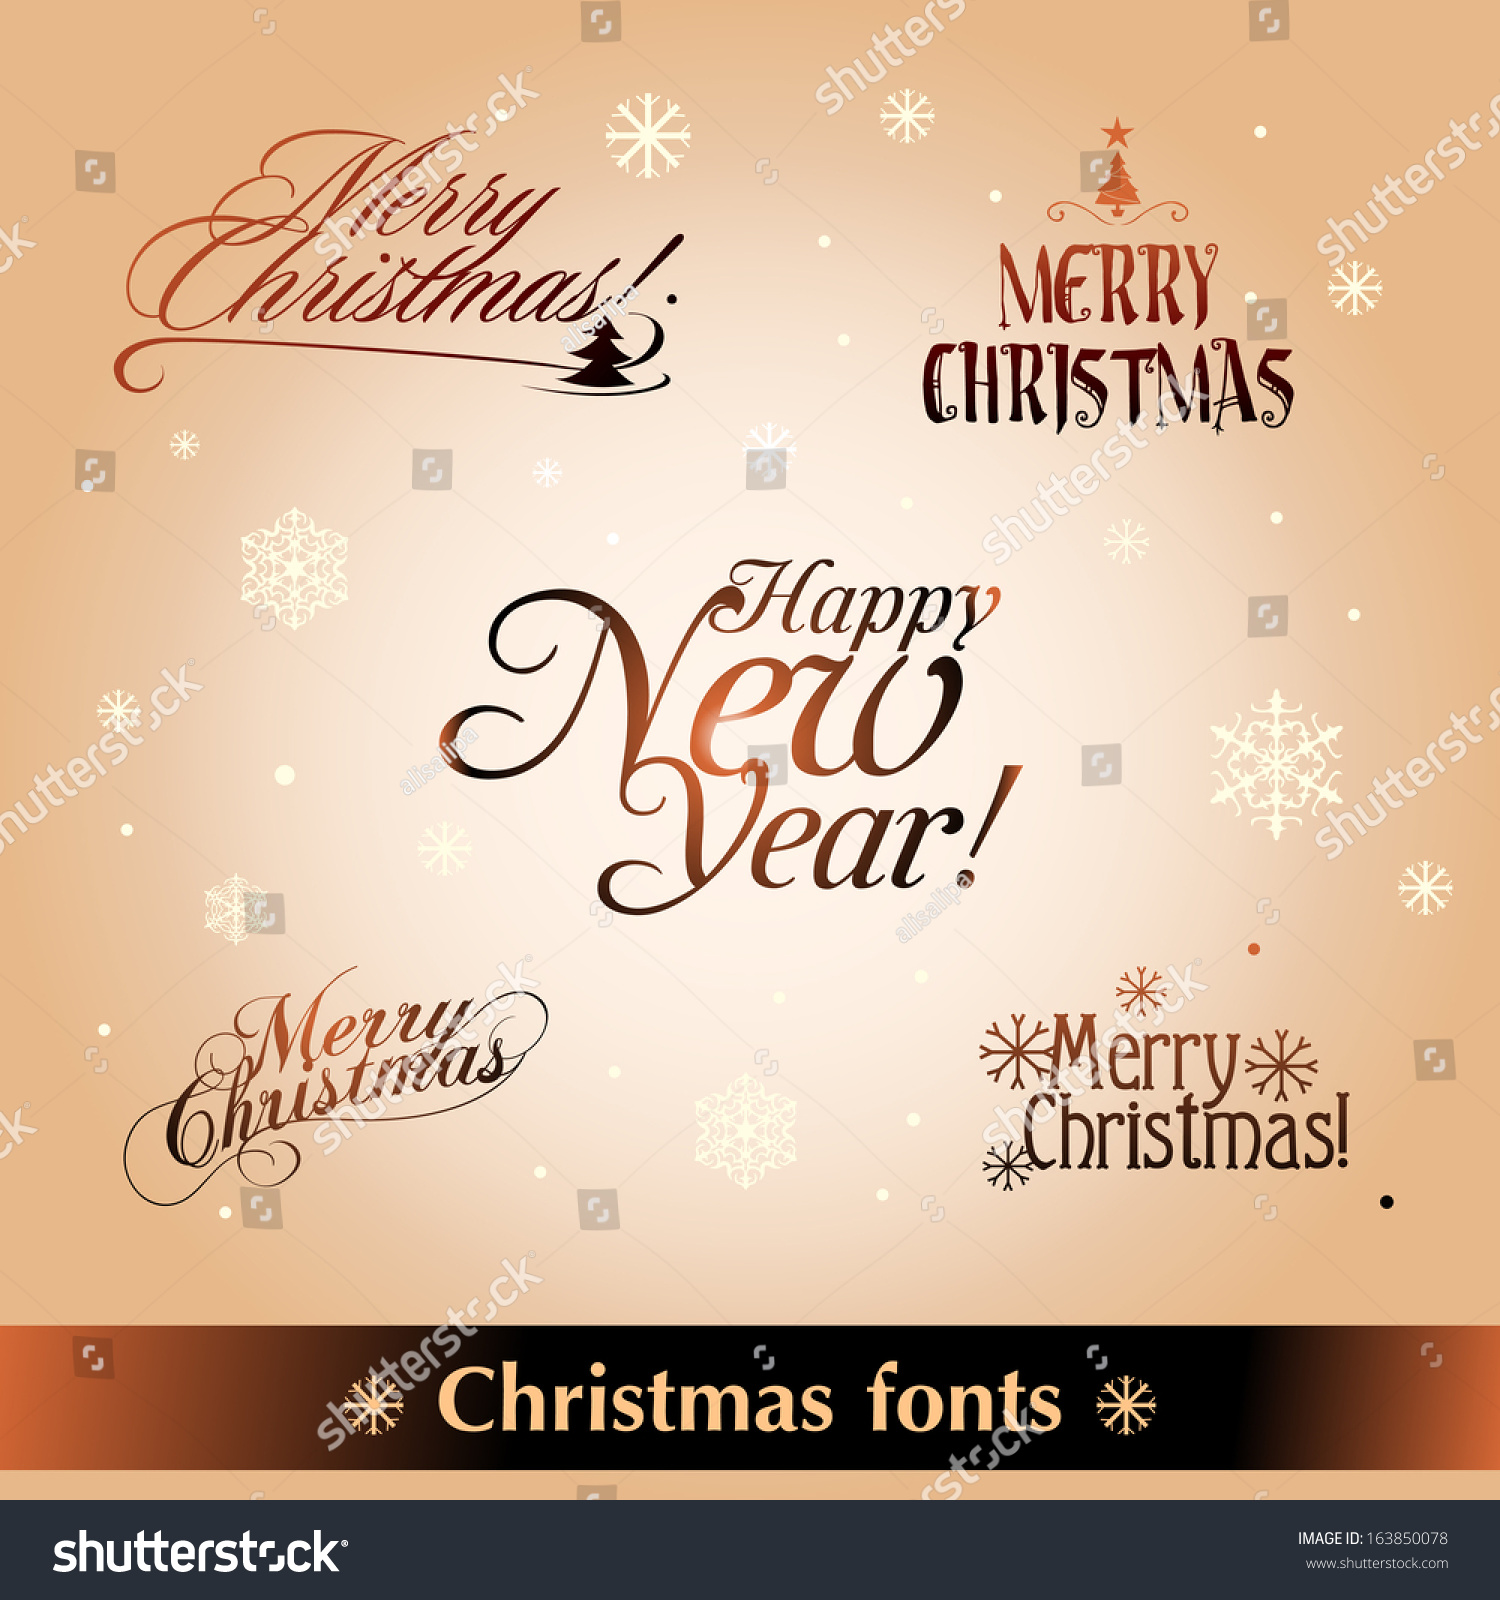 Christmas Fonts Stock Vector (Royalty Free) 163850078 - Shutterstock